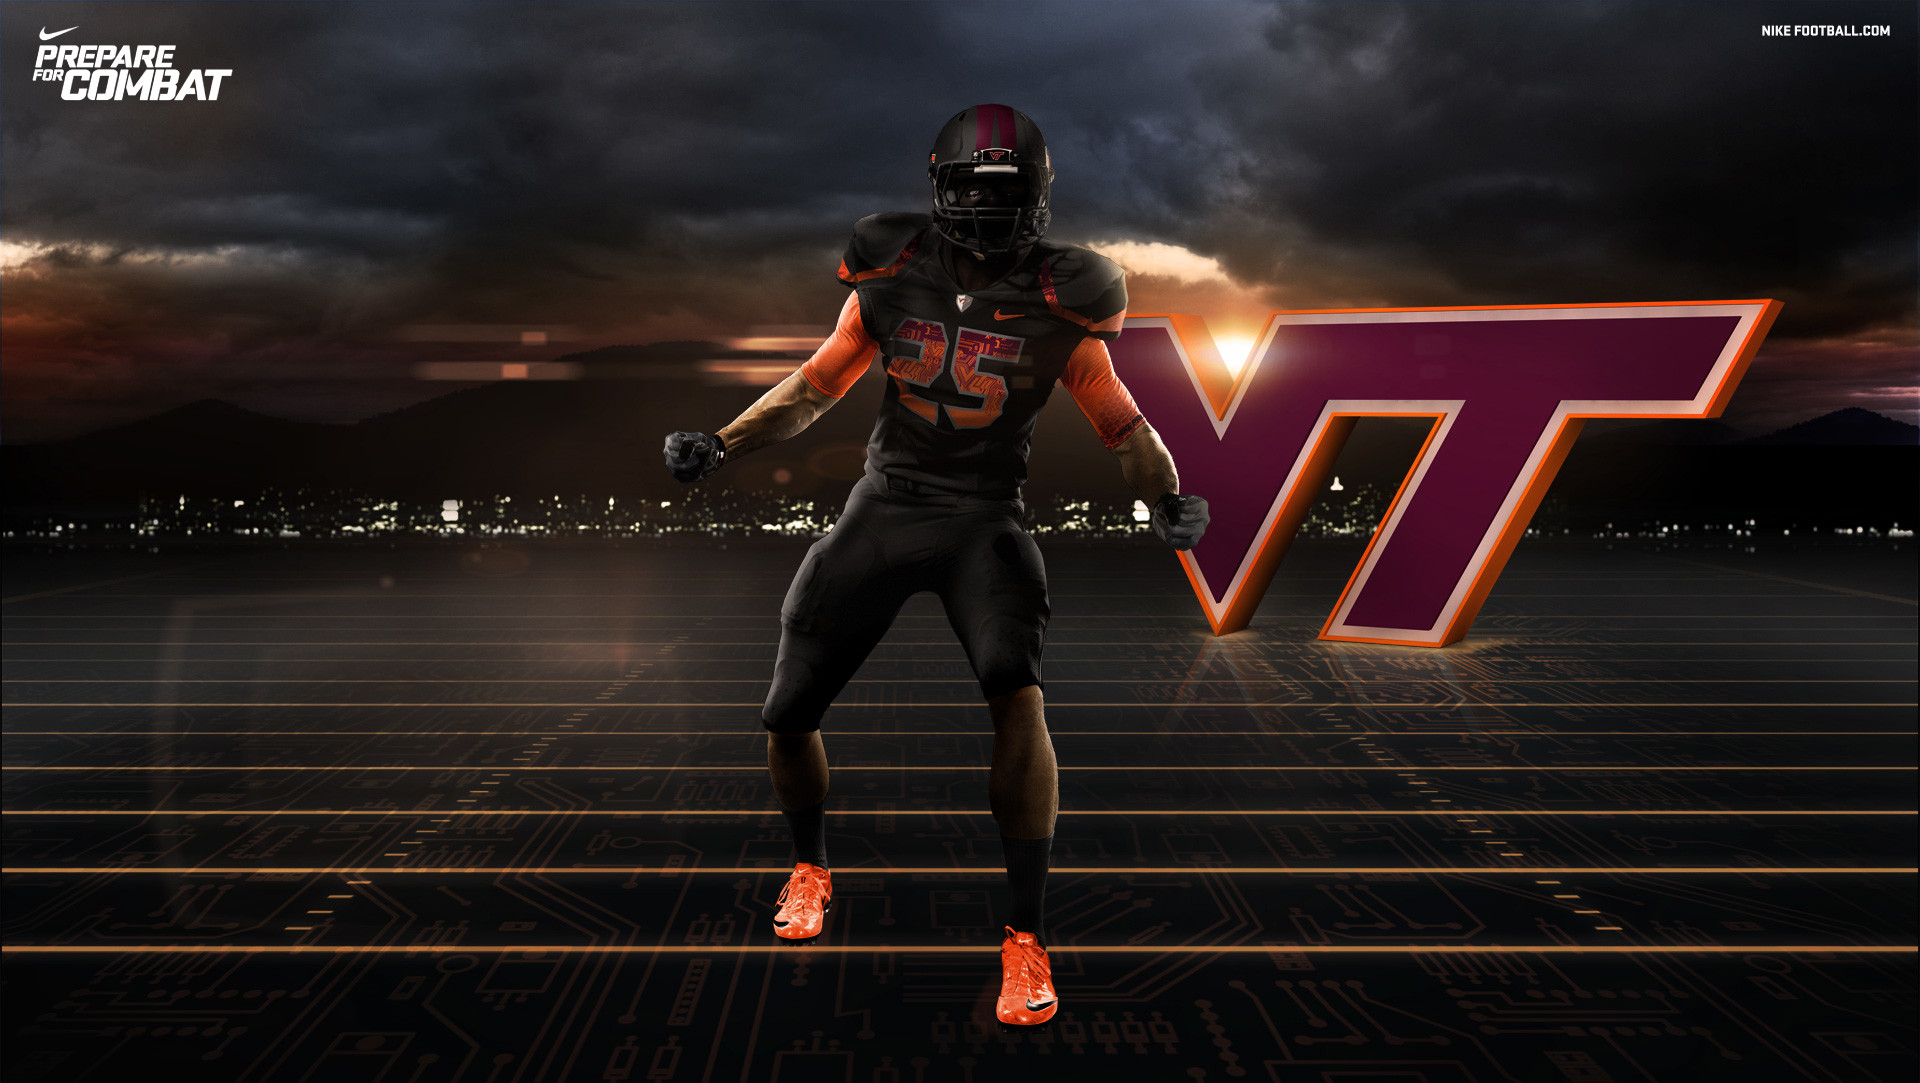 Football Virginia Tech Twitter 446790 With Resolutions 1920×1083 .